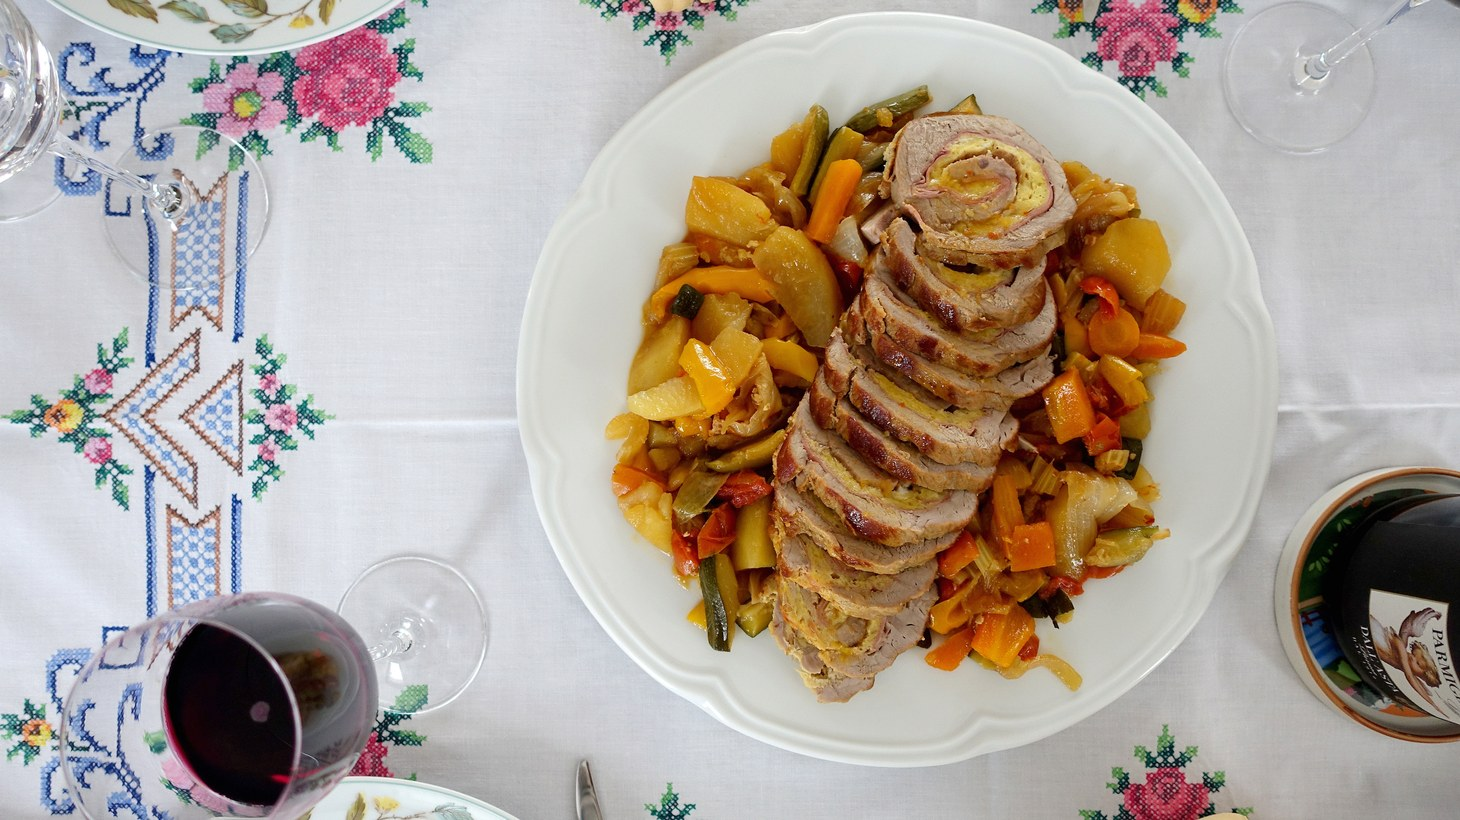 """Excerpted from """"The Italian Table: Creating Festive Meals for Family and Friends"""", by Elizabeth Minchilli, Rizzoli, 2019."""